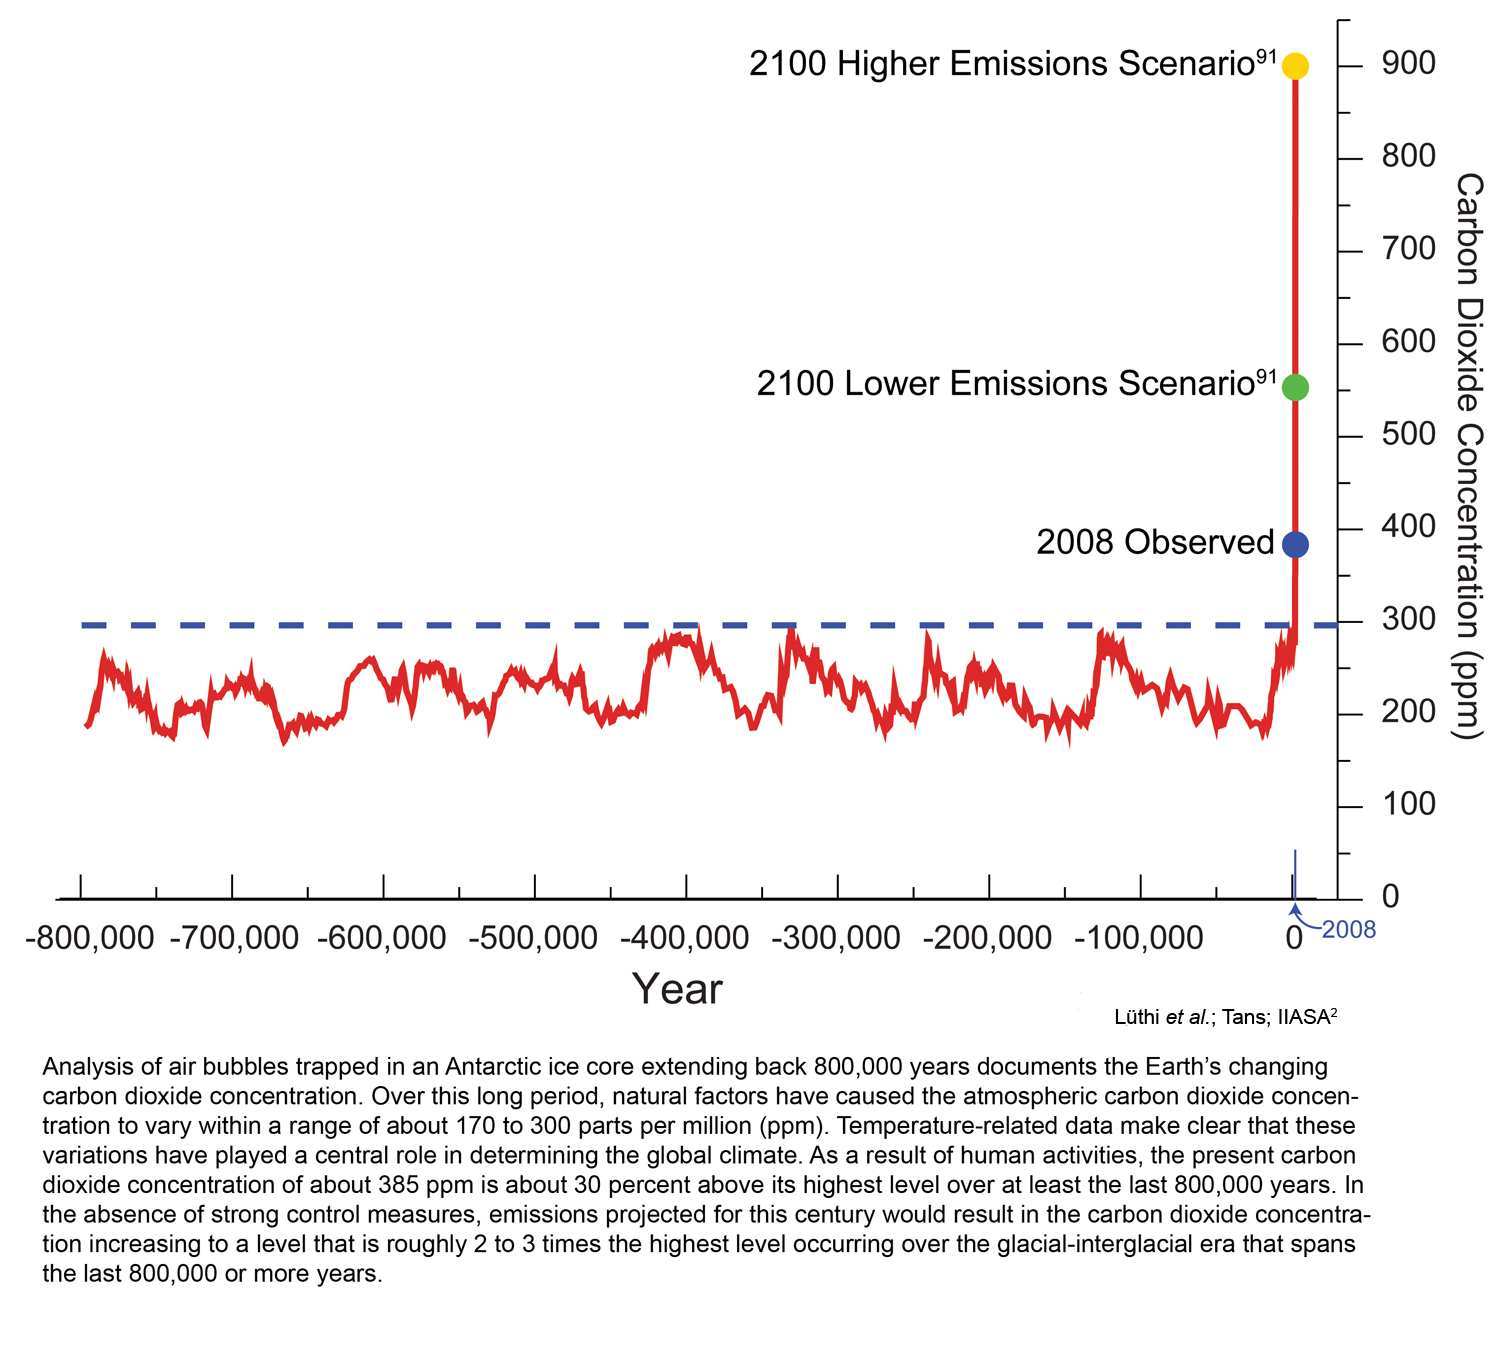 Climate Change and CO2?